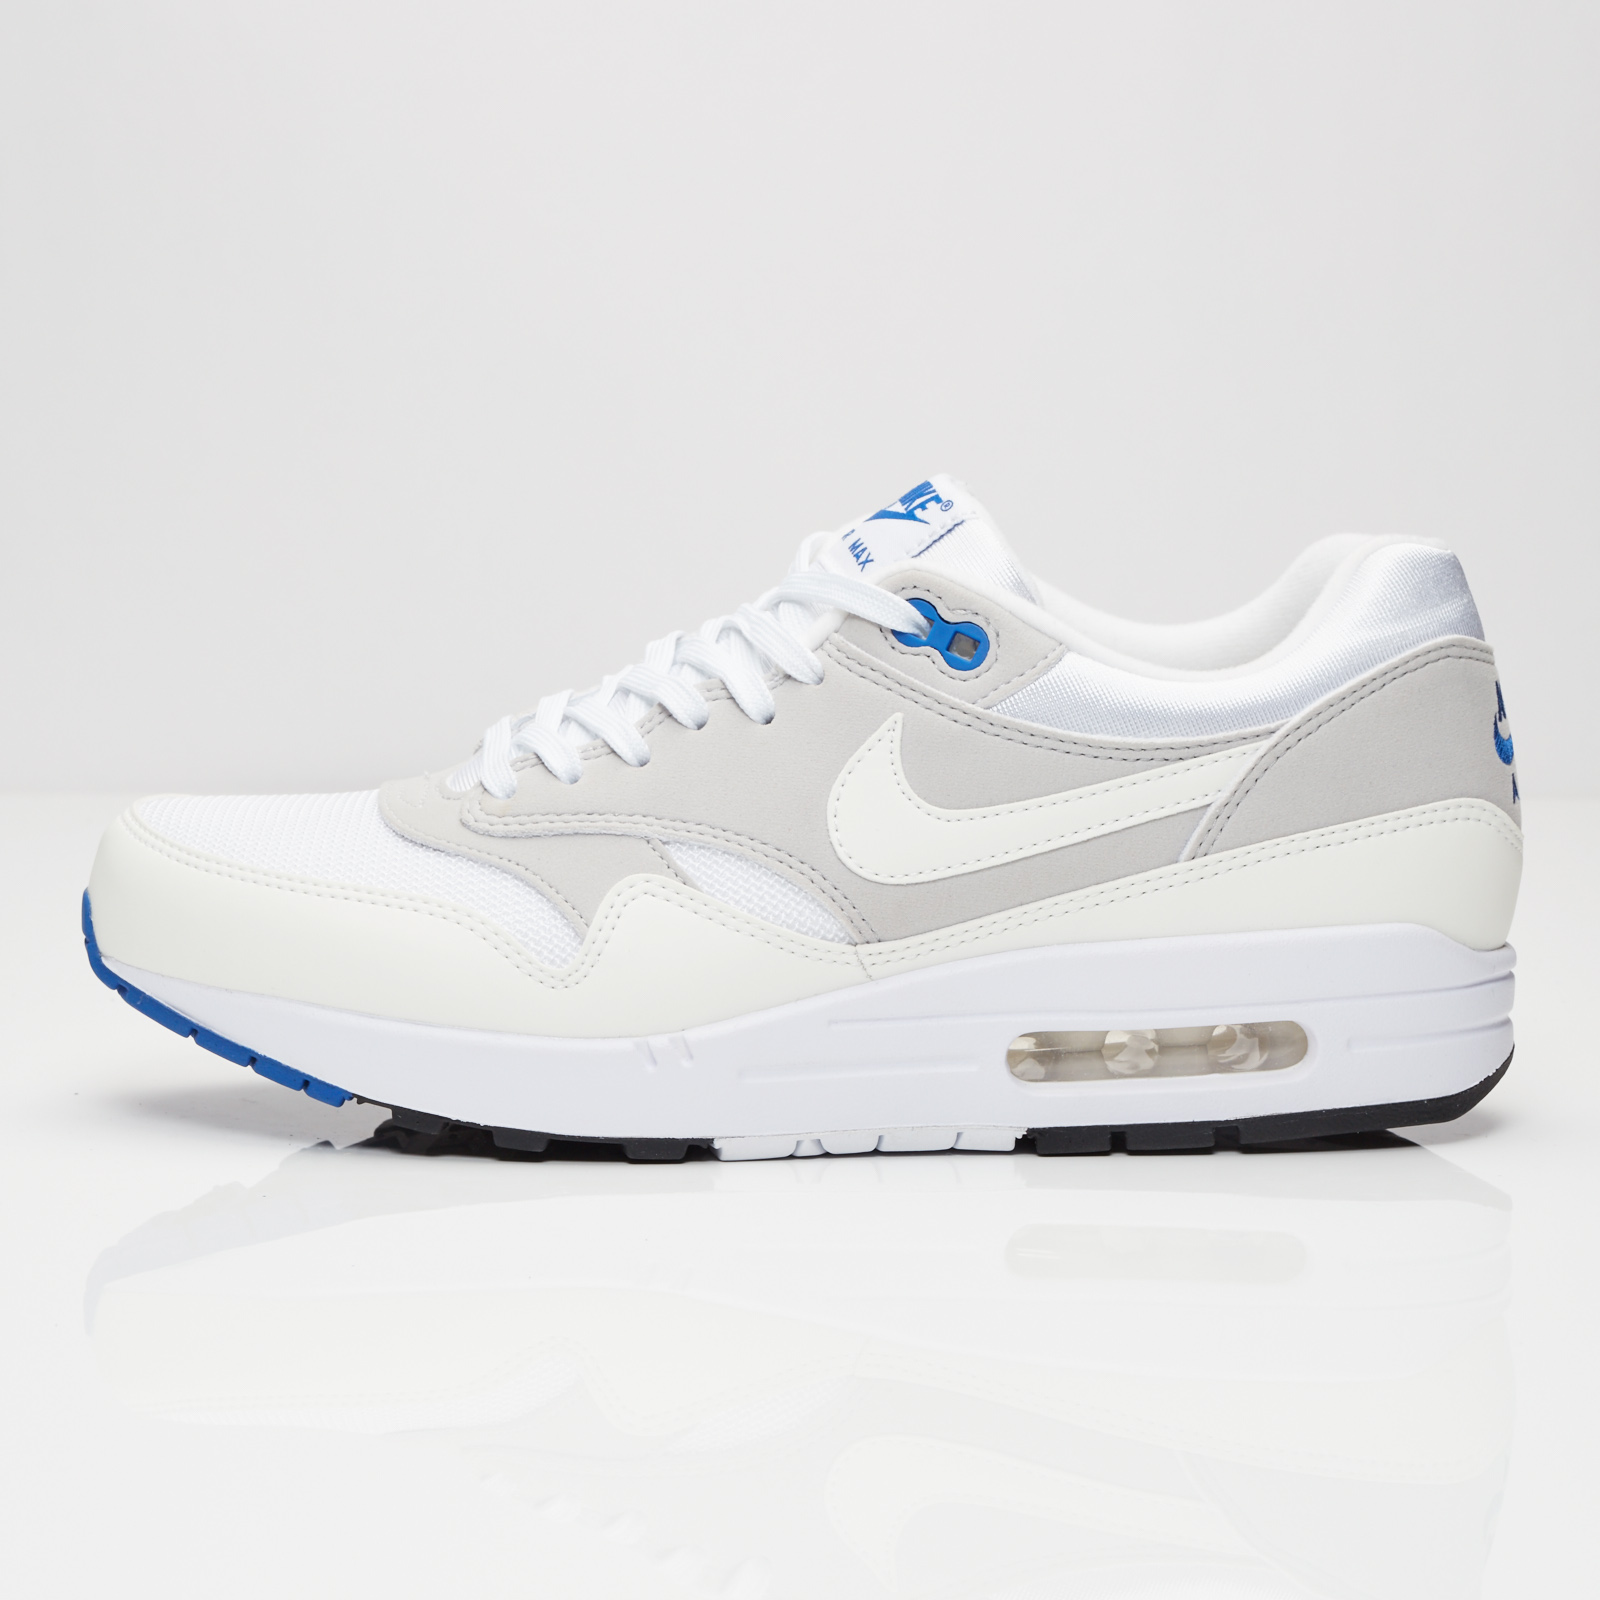 Nike Air Max 1 CX QS 811373 100 Sneakersnstuff